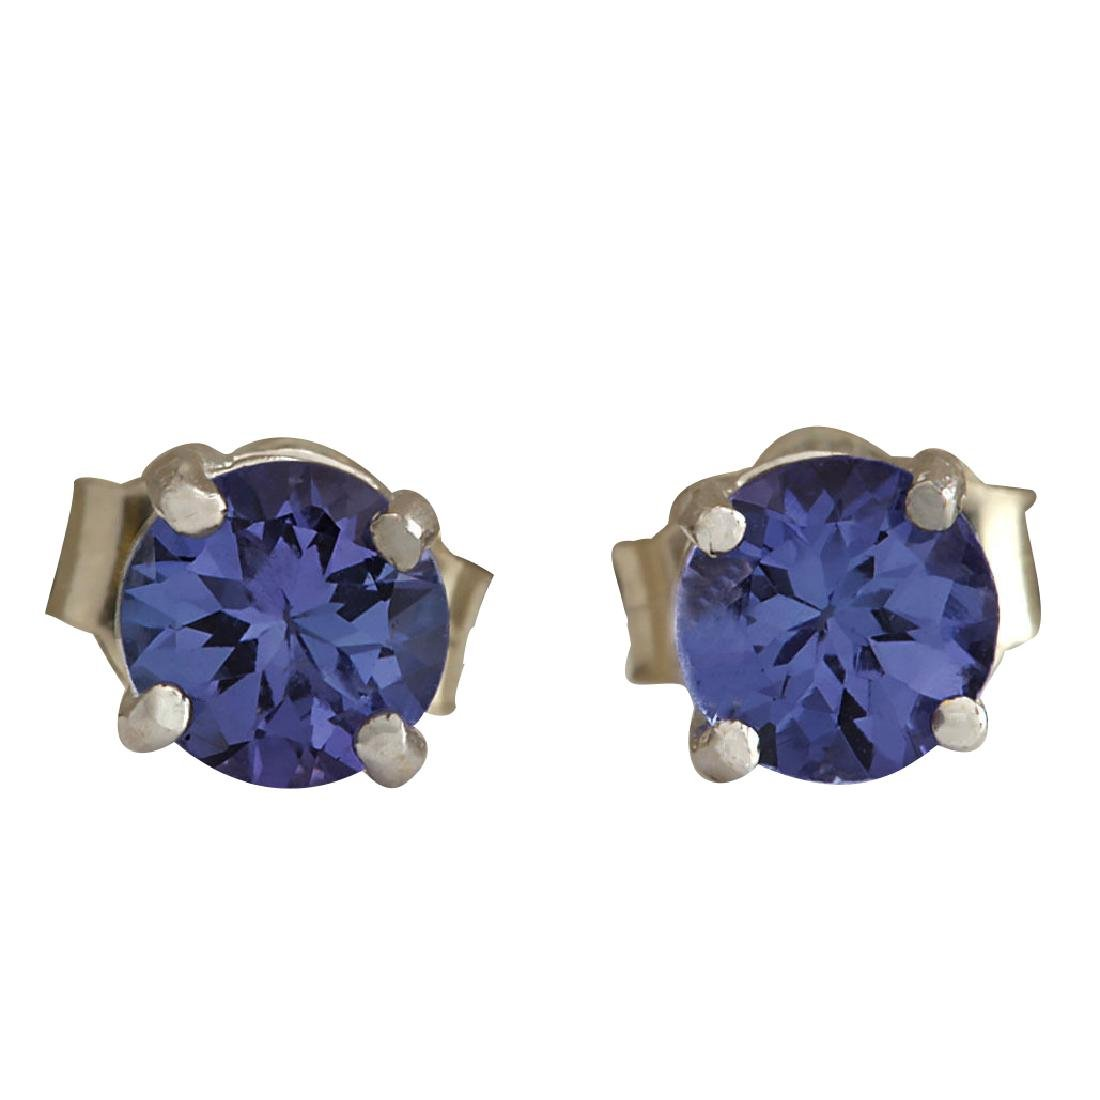 1.00CTW Natural Tanzanite Earrings In 18K Solid White